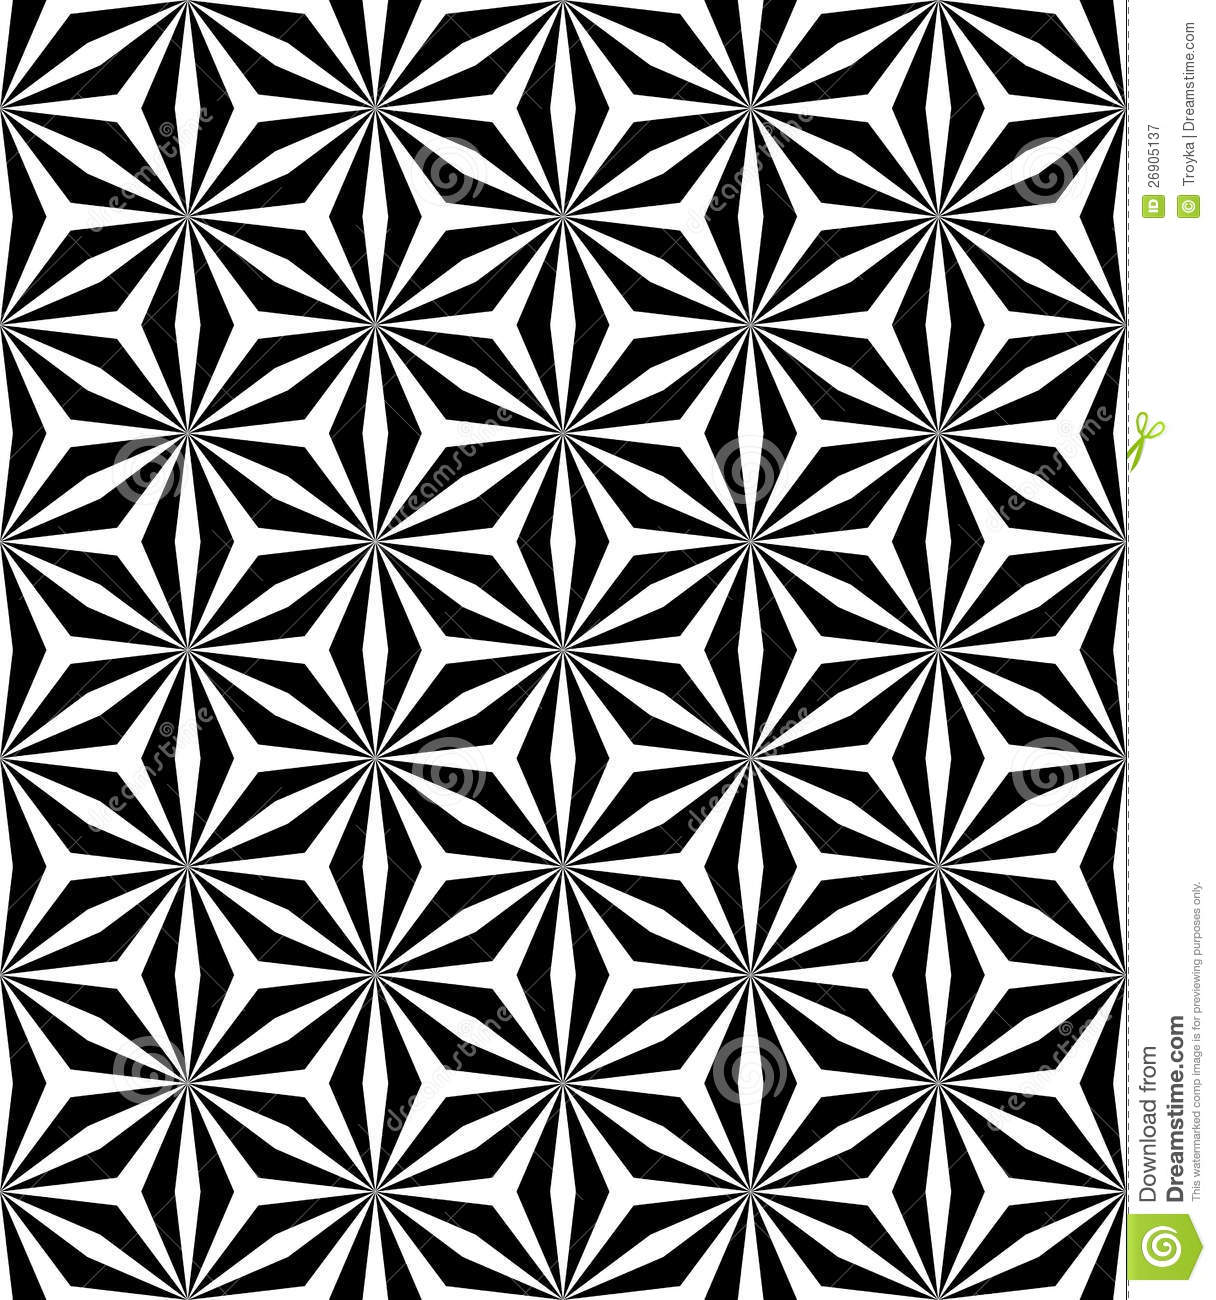 black and white diamond print wallpaper